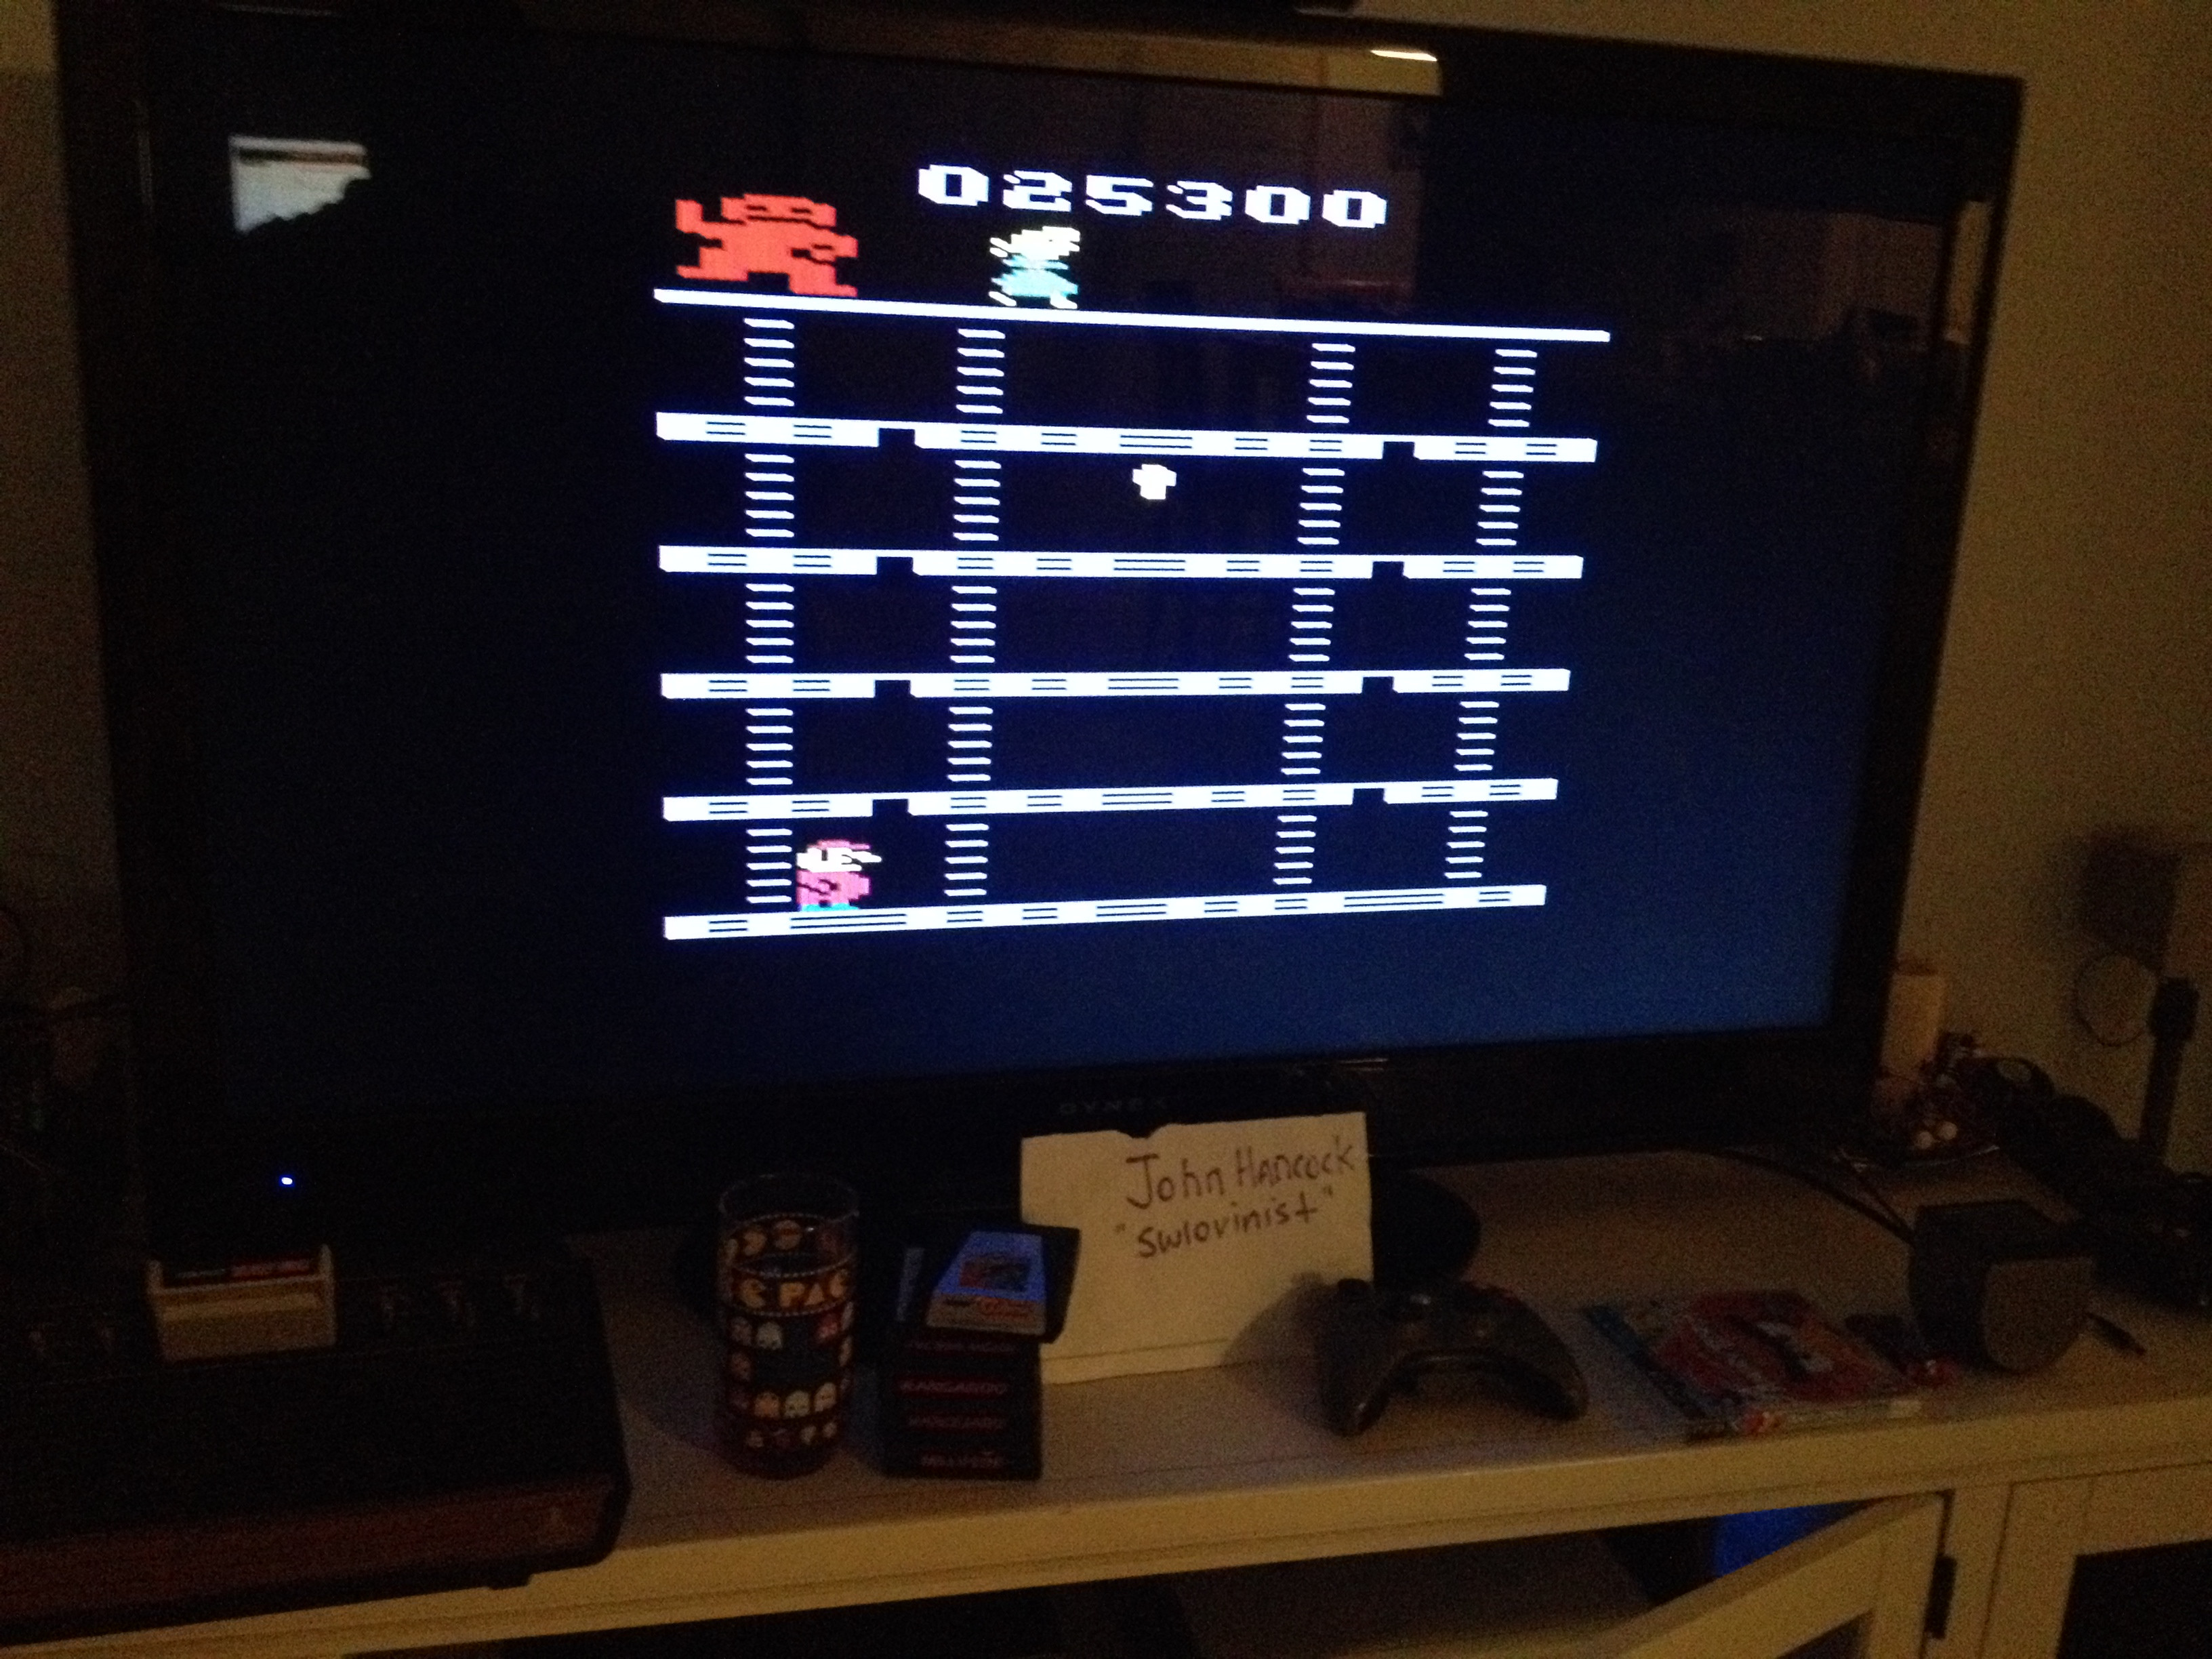 Donkey Kong 25,300 points